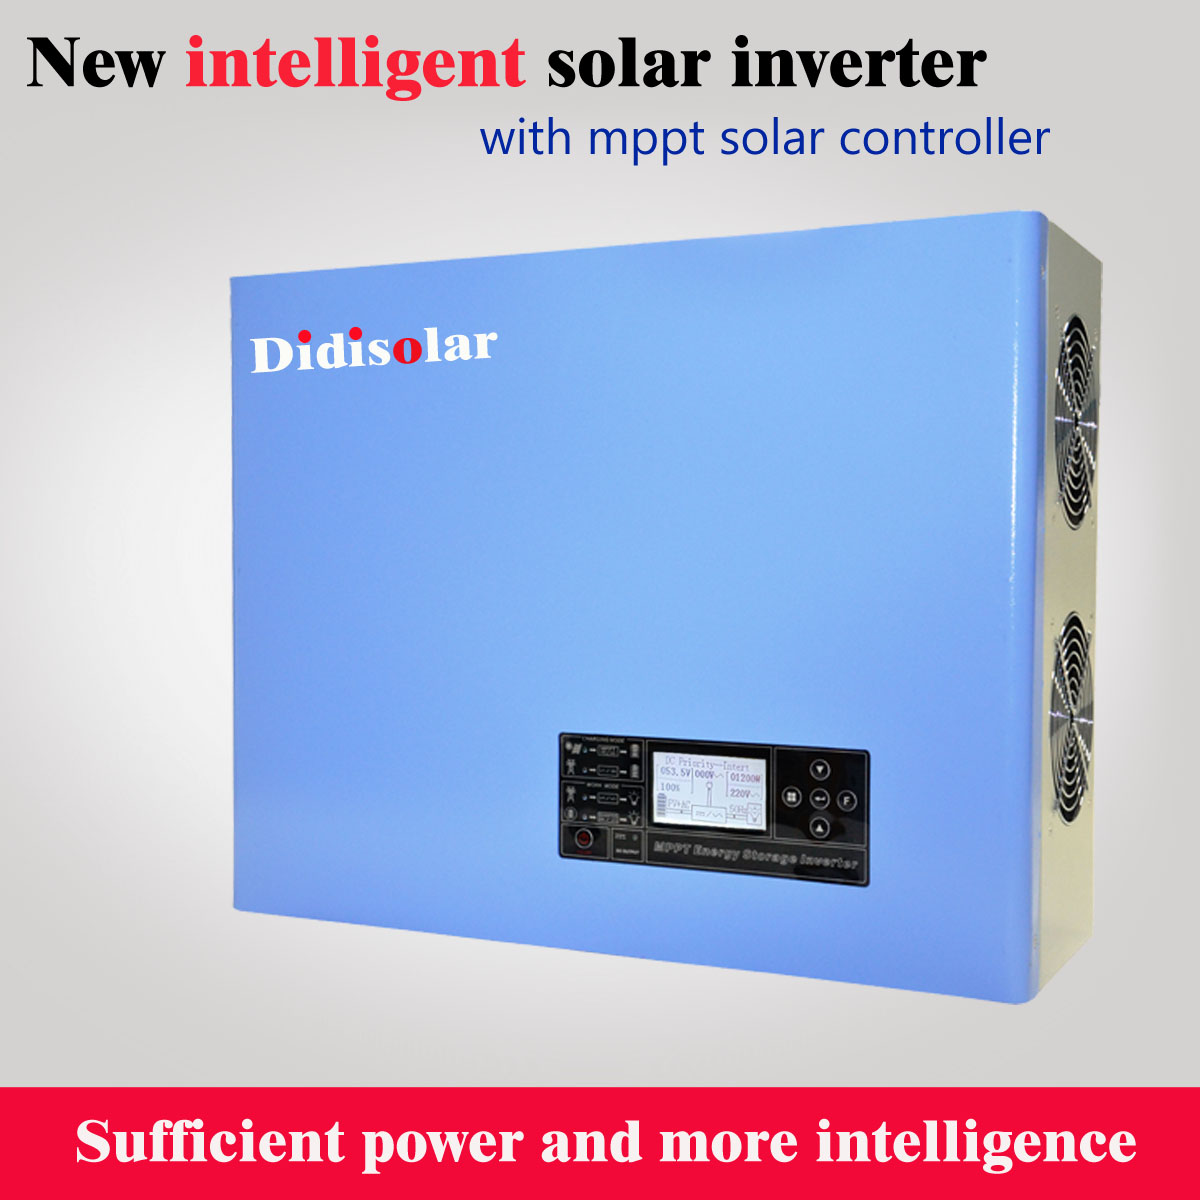 How to set the time and date of solar inverter?